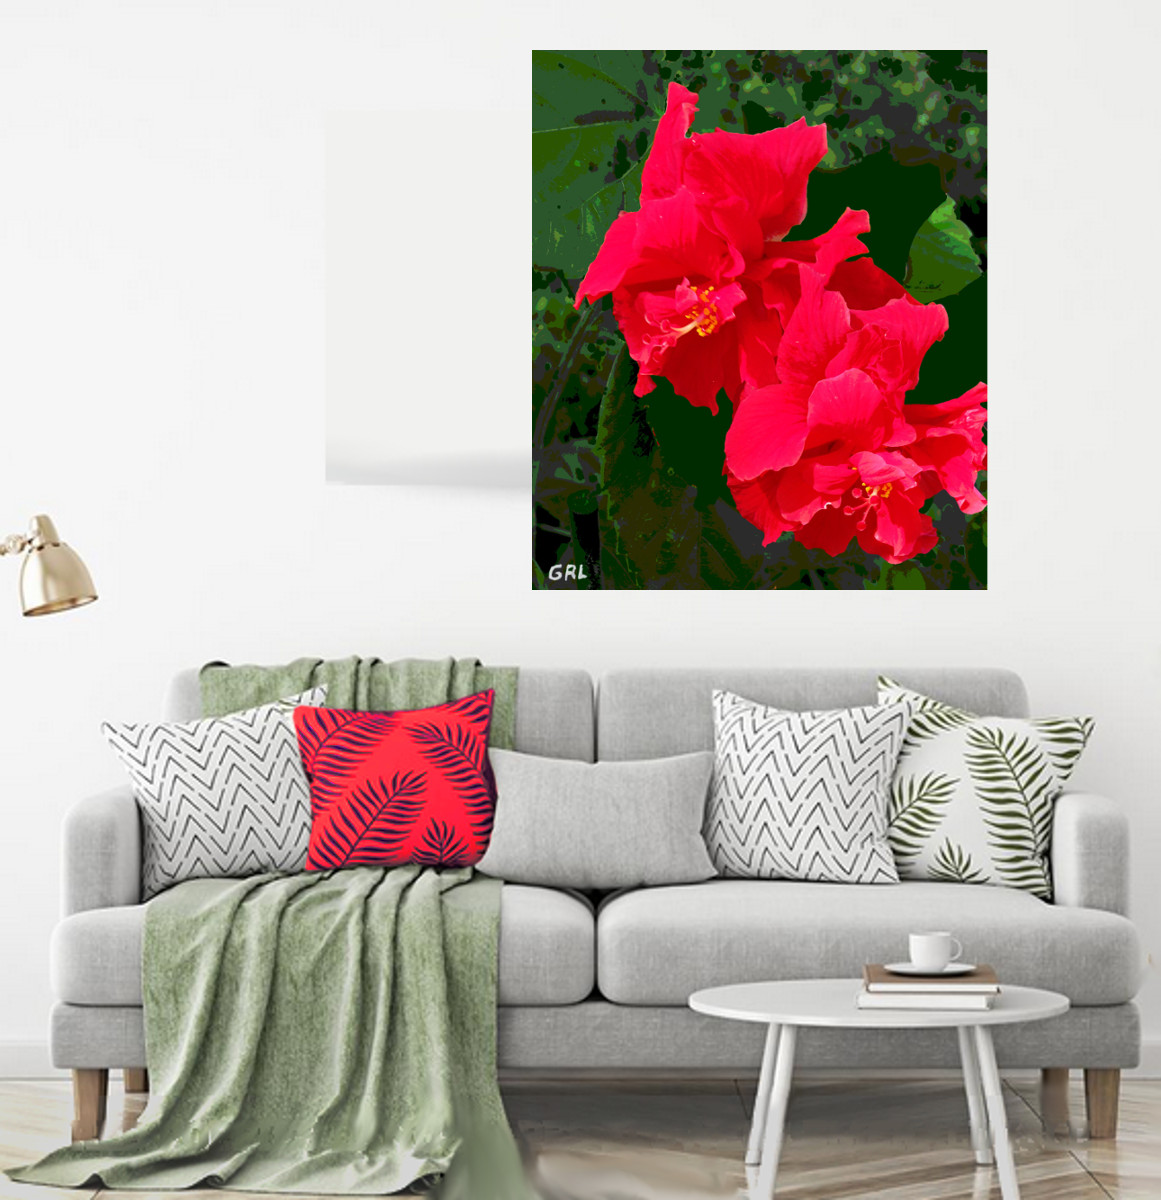 Original Hibiscus Fine Art. Free downloads, wallpaper, ‬‎GrlFineArt. A painting from my home landscape, Gulf Coast, Florida. Fine art work, nudes, figurative paintings. View here, art decor ‪‎fineart figures ‪‎painting‬ ‪‎painting‬s prints. Hibiscus, Home Decor